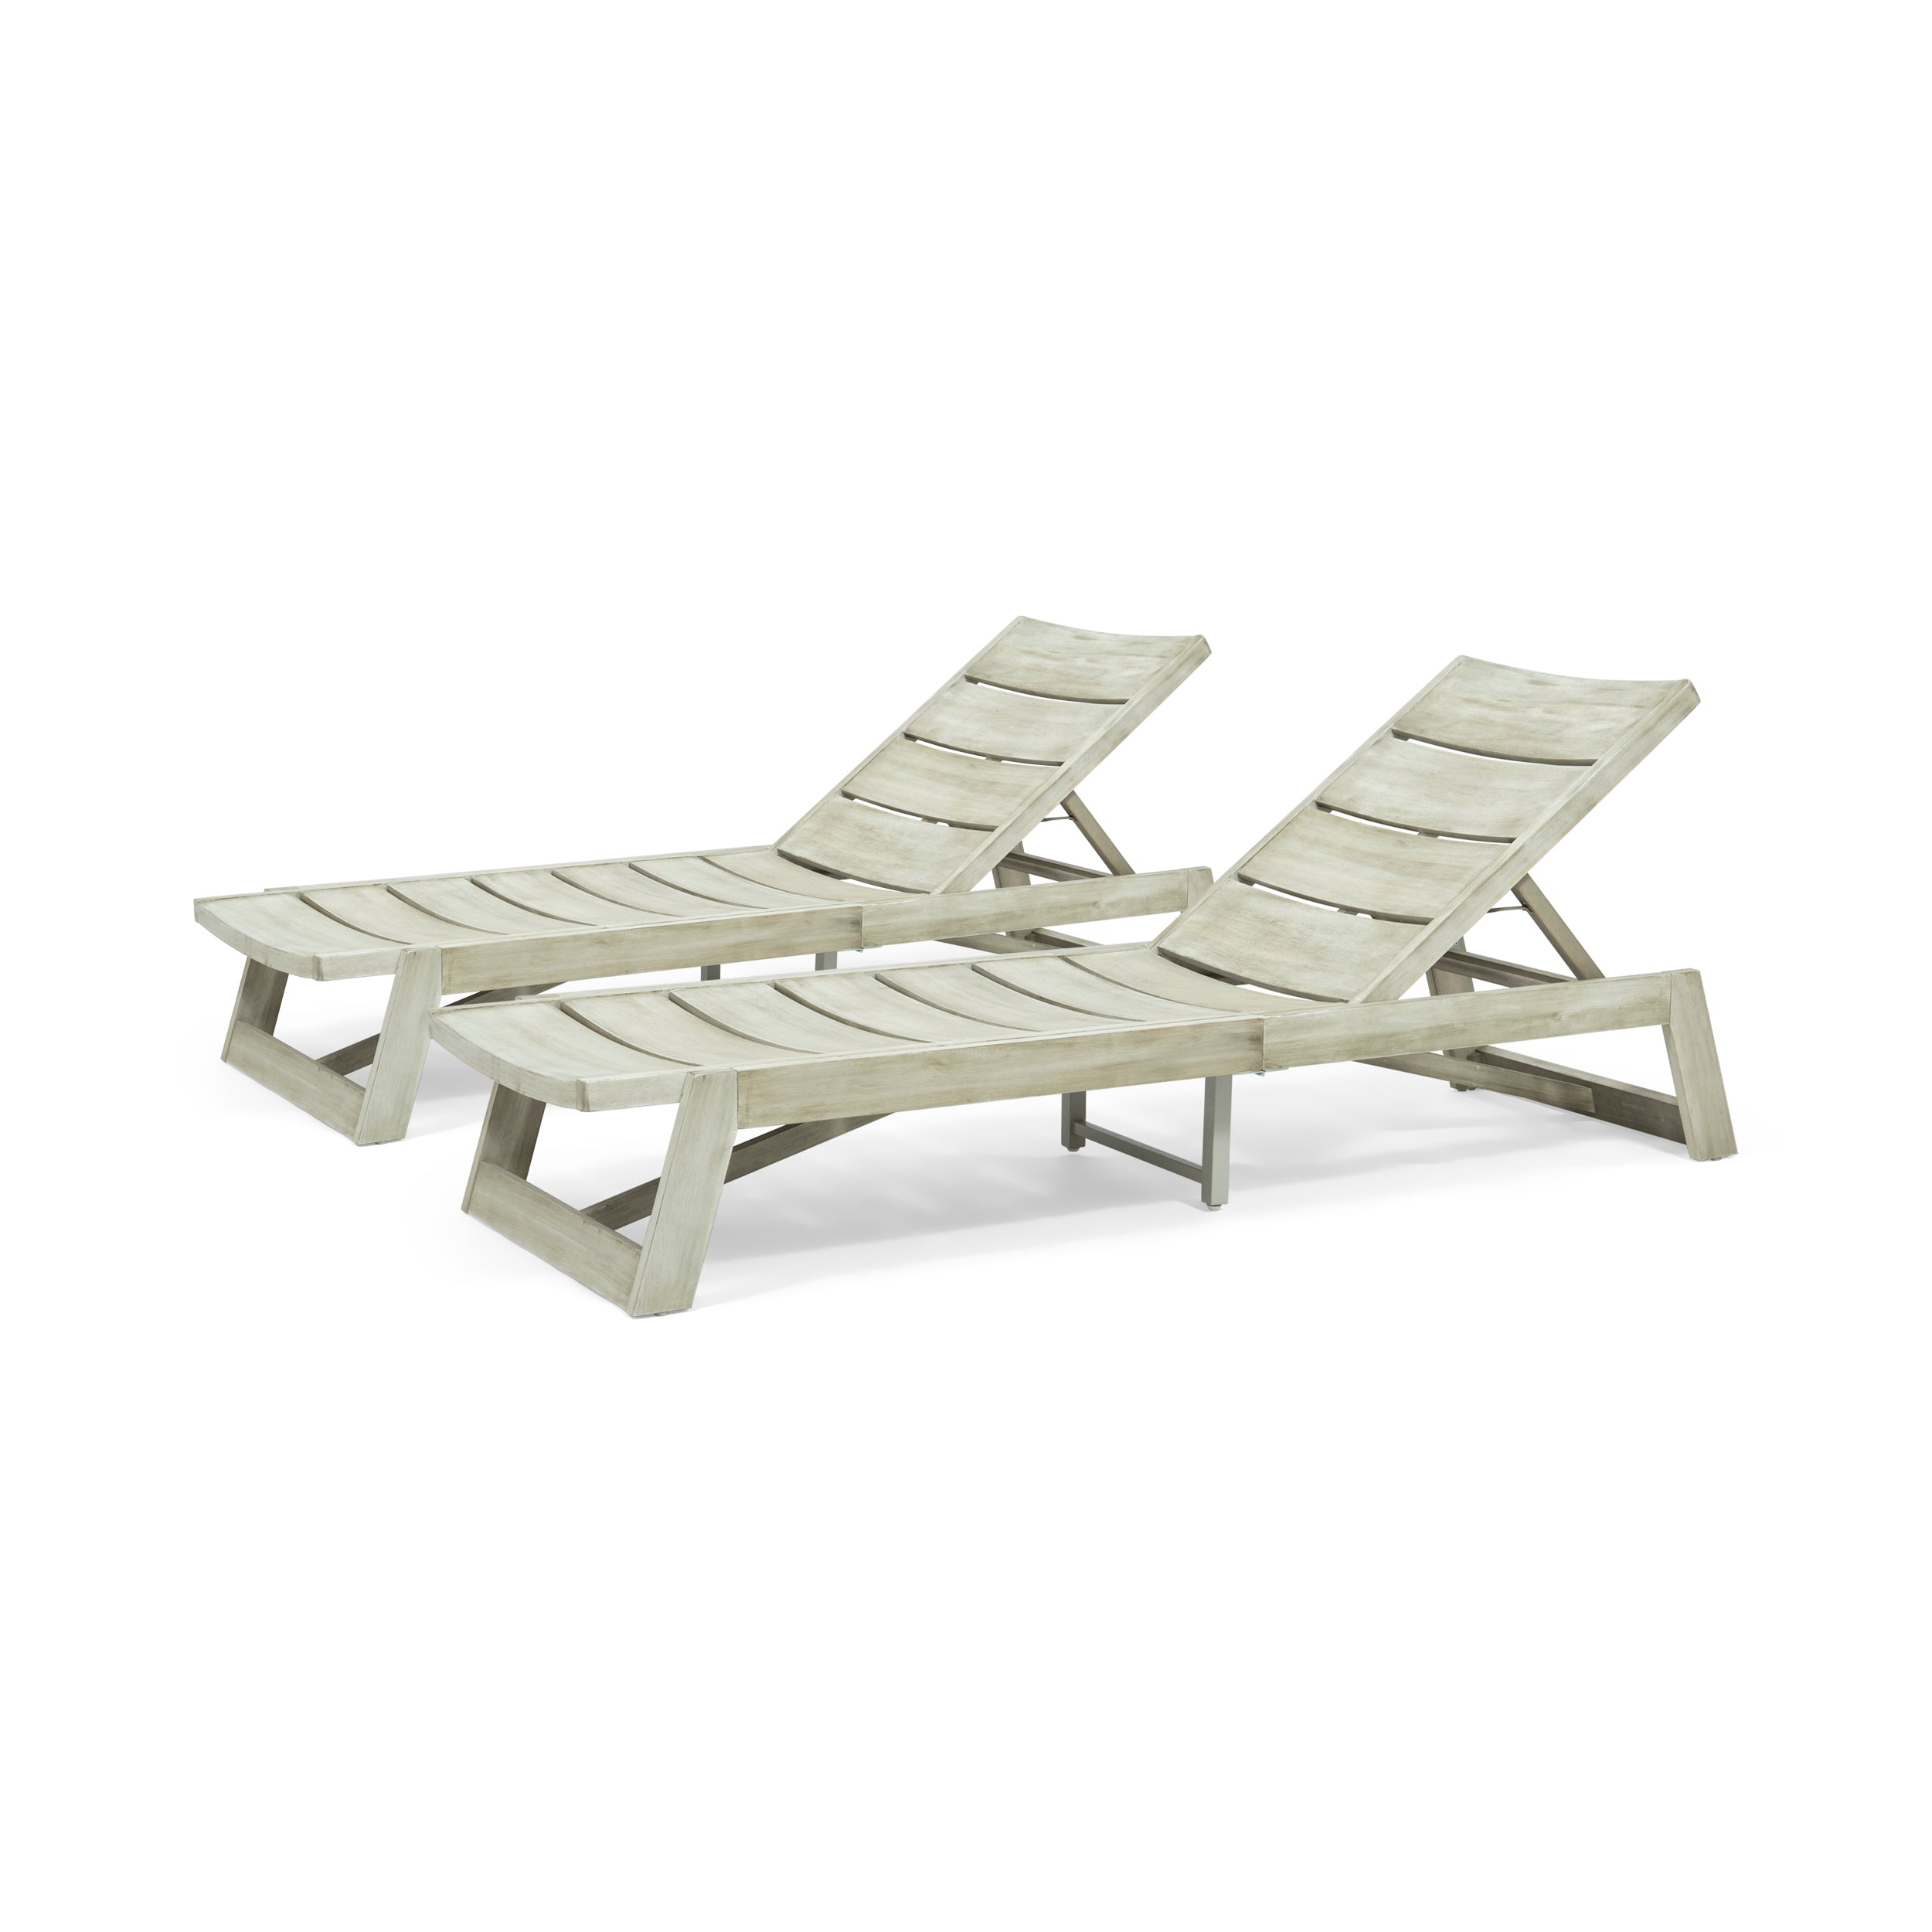 Adelaide Outdoor Wood and Iron Chaise Lounges Set of 2 Teak